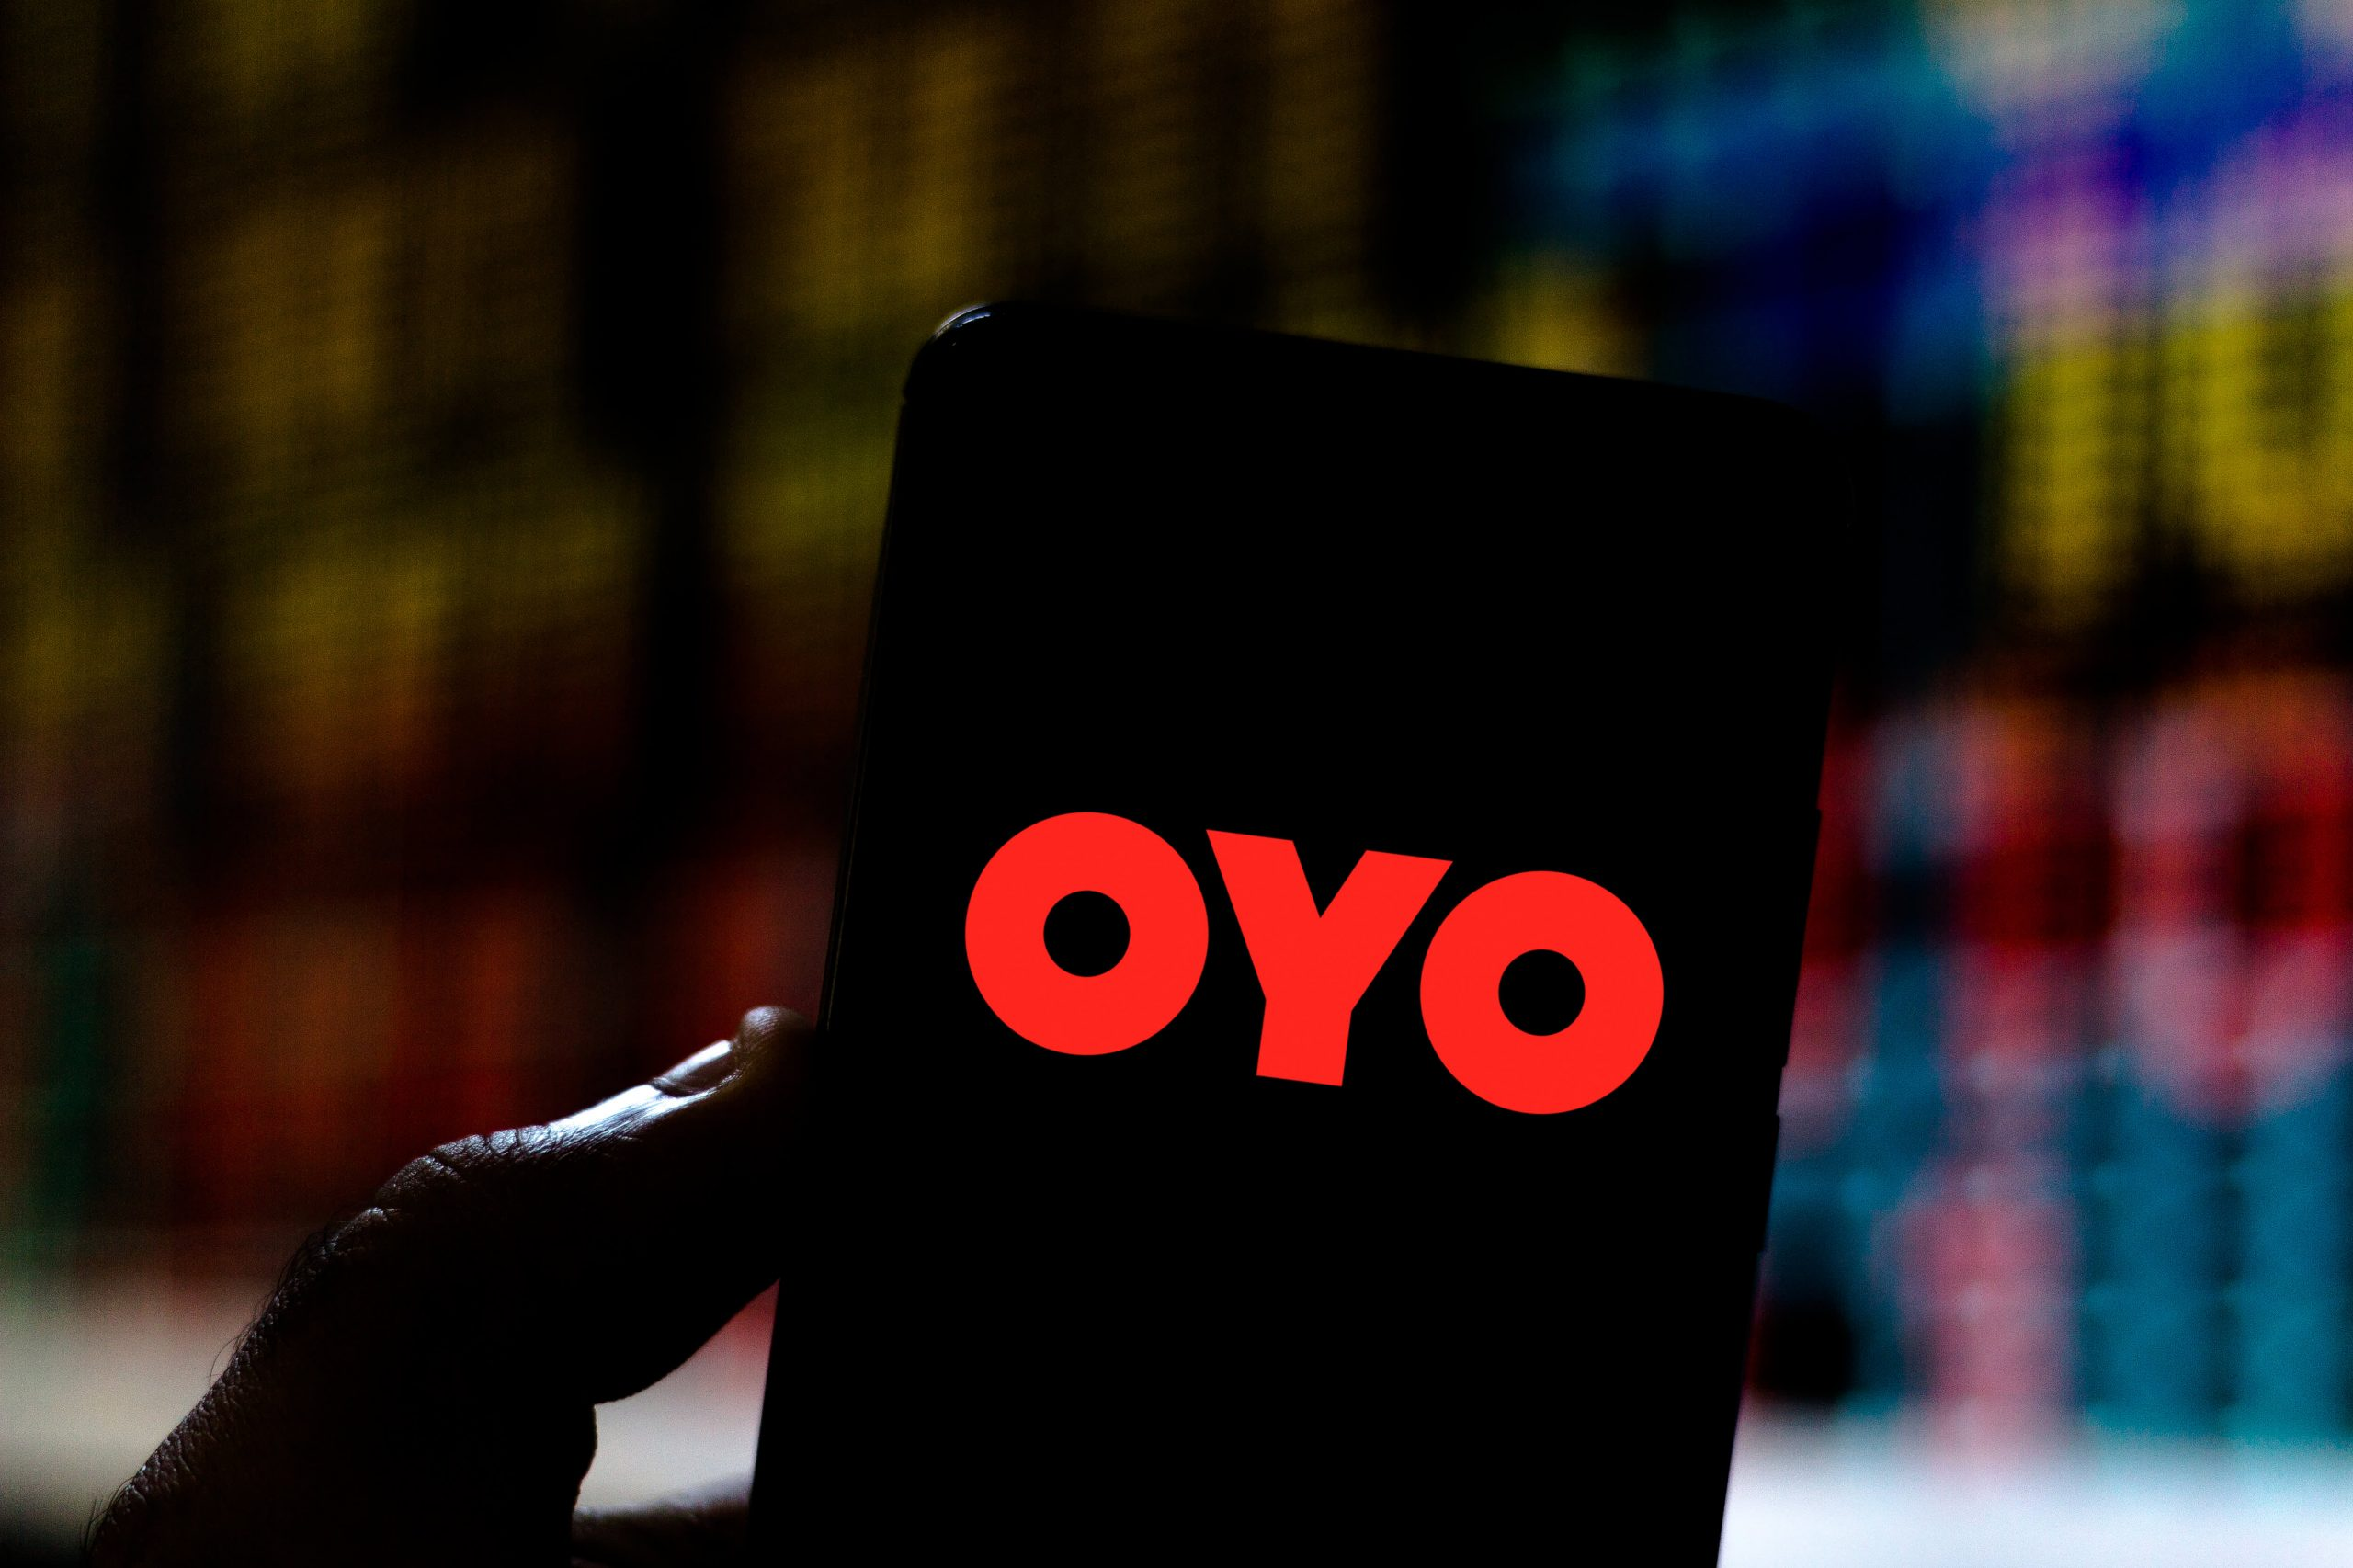 SoftBank-backed Indian start-up Oyo files for $1.2 billion IPO